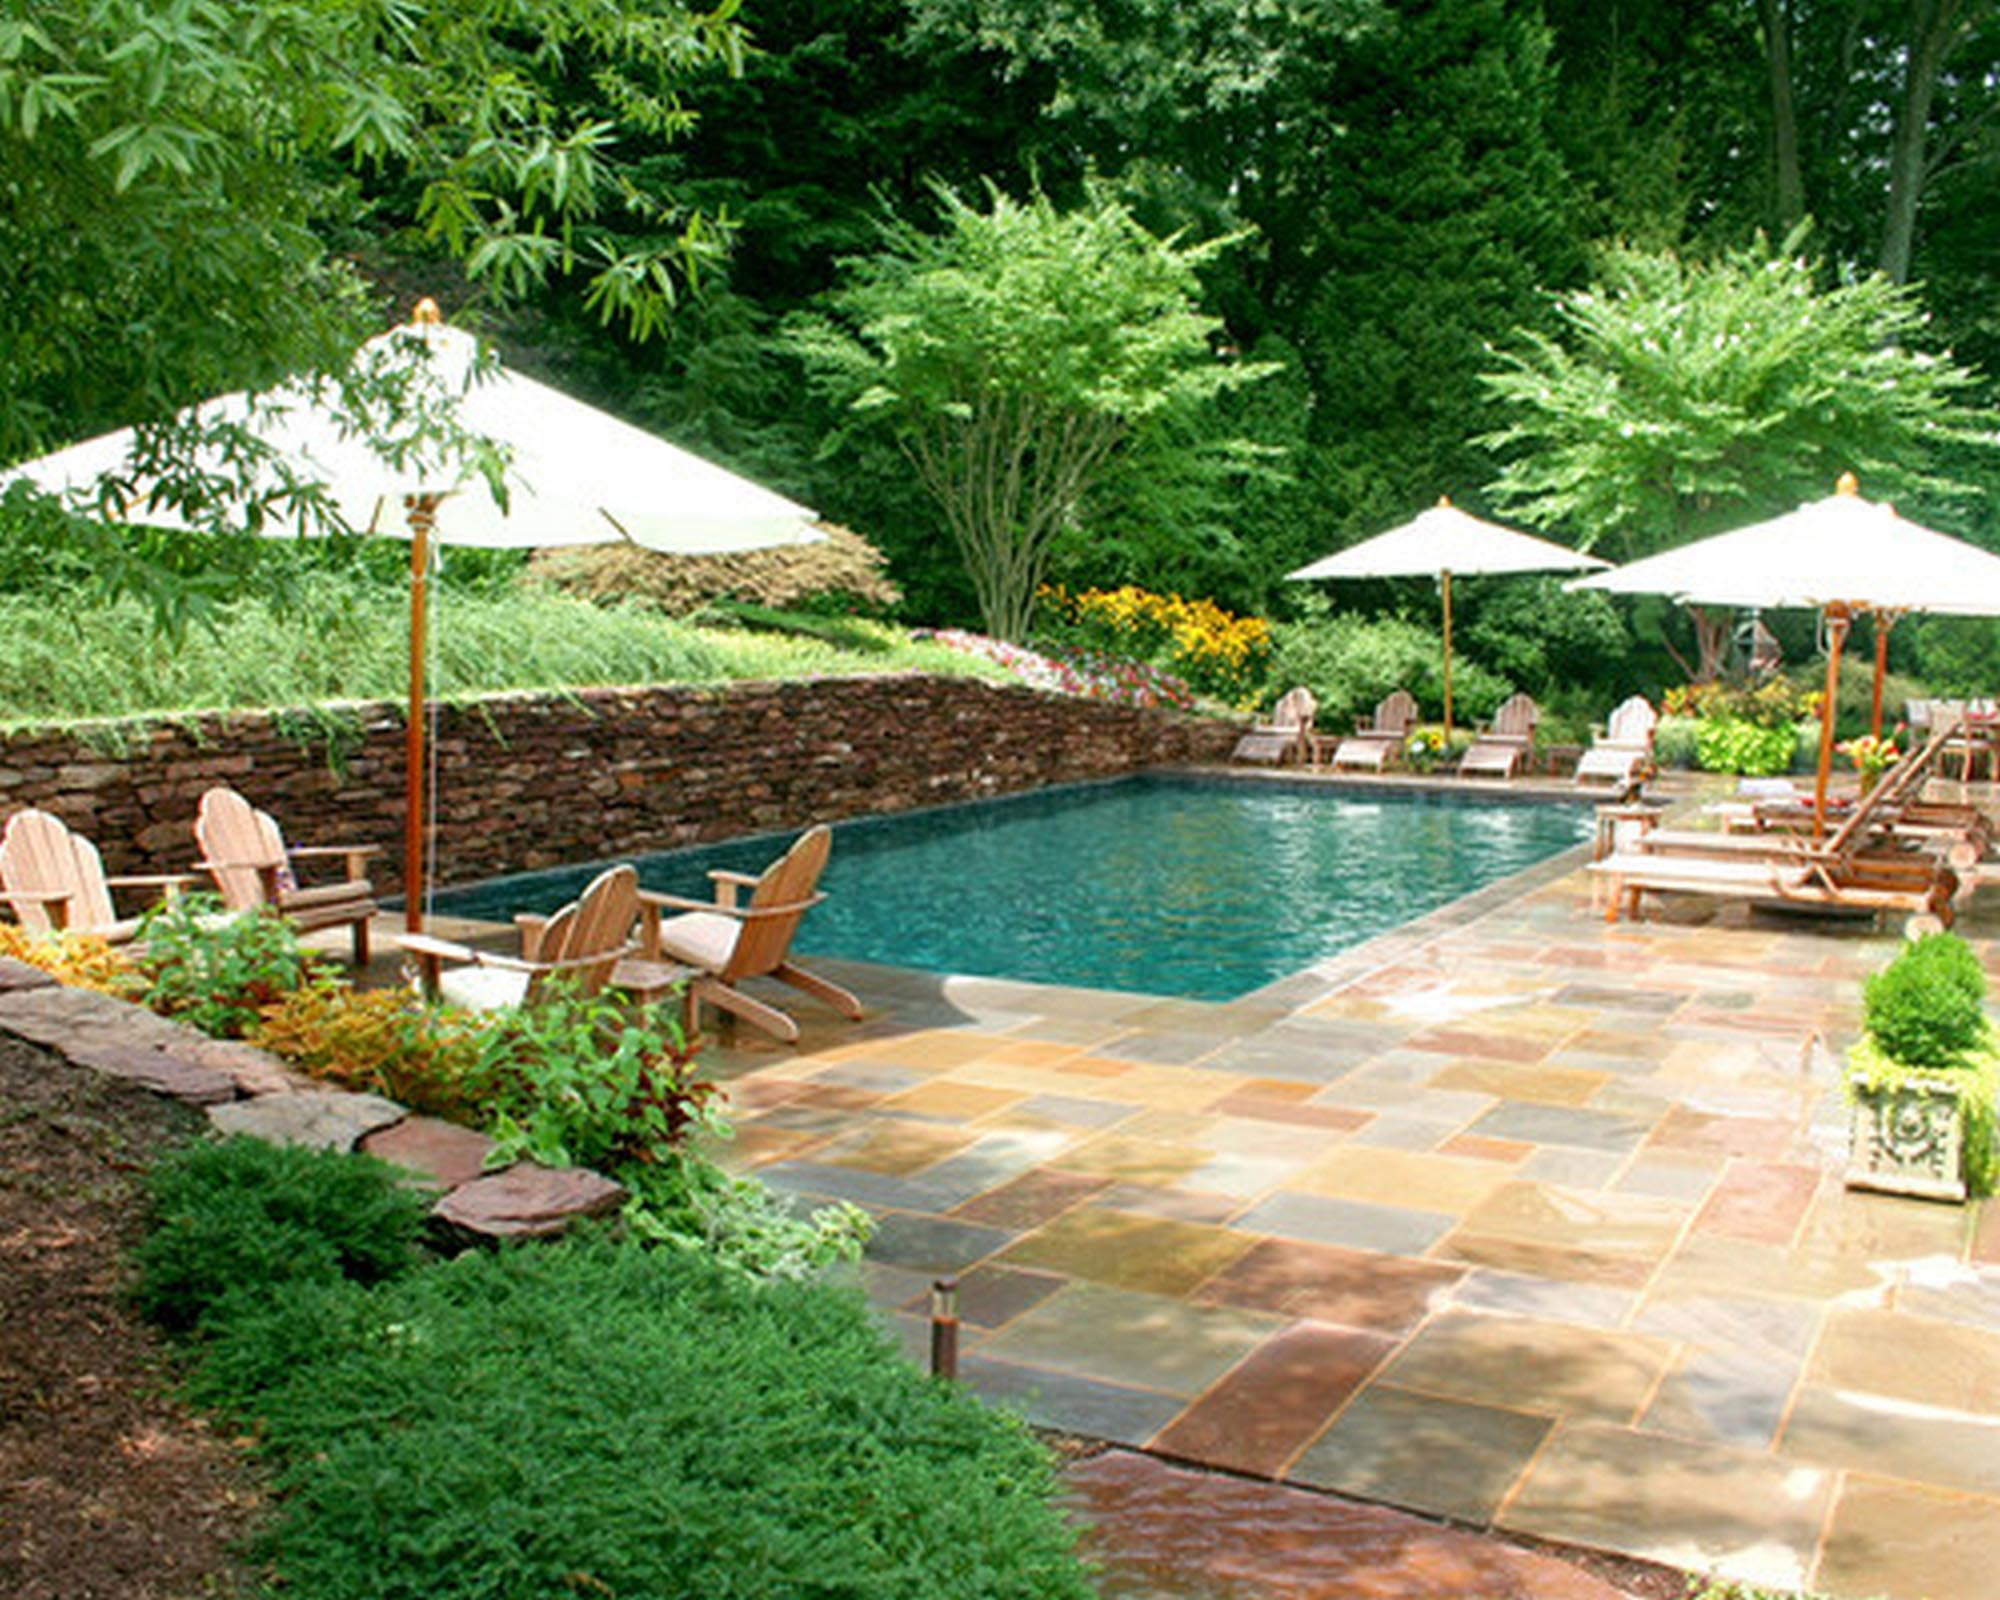 Backyard Landscape Design Tool garden tool storage ideas photo album patiofurn home design small front house yard landscaping Pools Tool With Swimming Pool Killer House Backyard Design With Curve